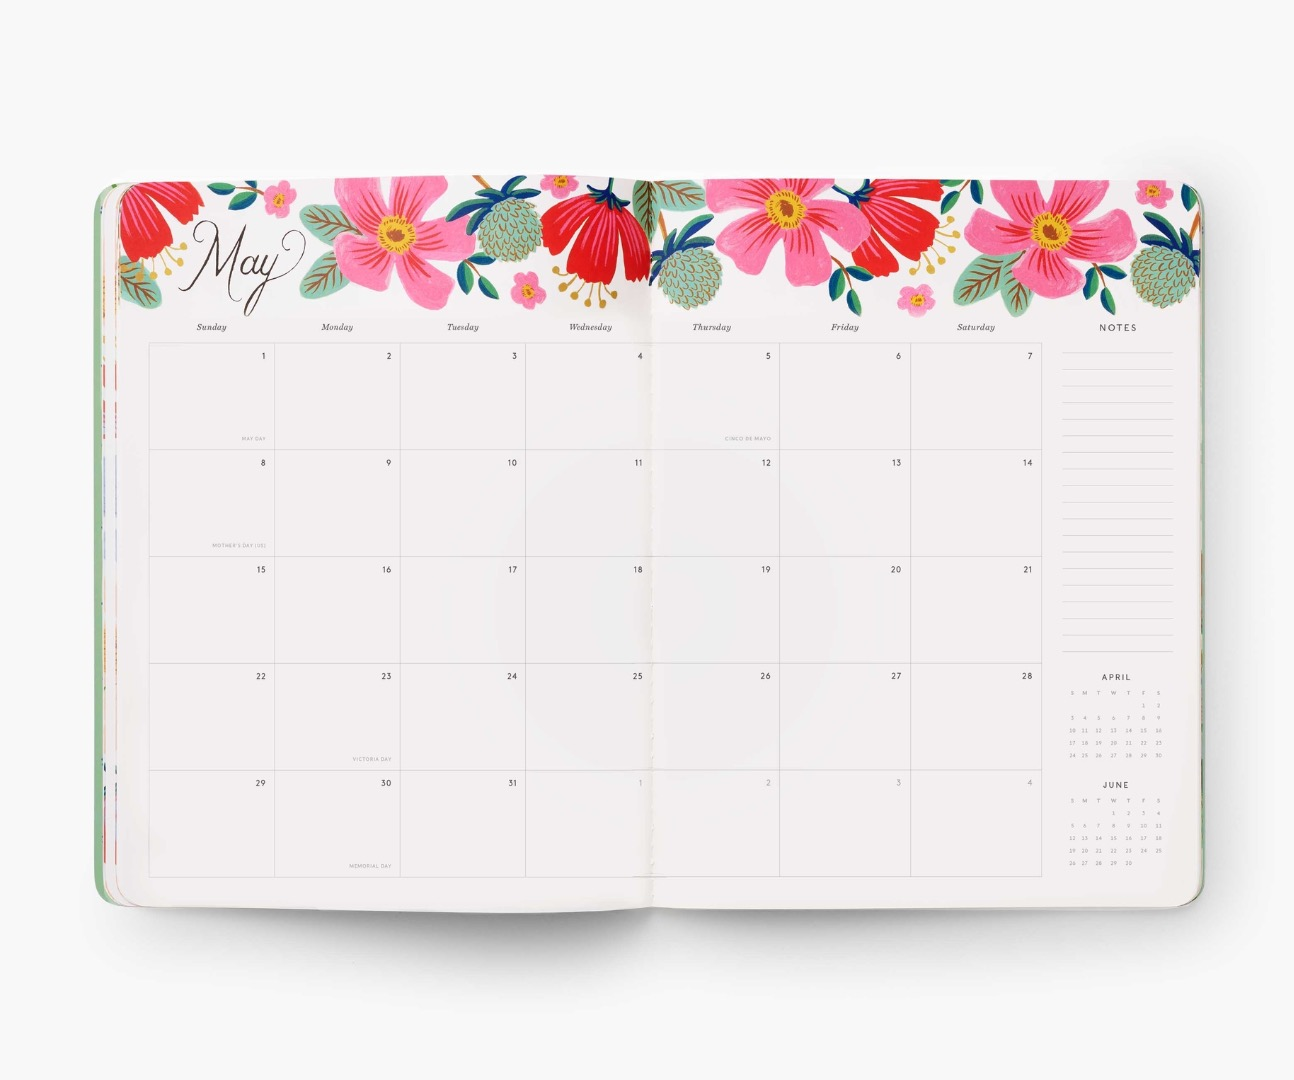 2022 Dovecote Appointment Notebook 4